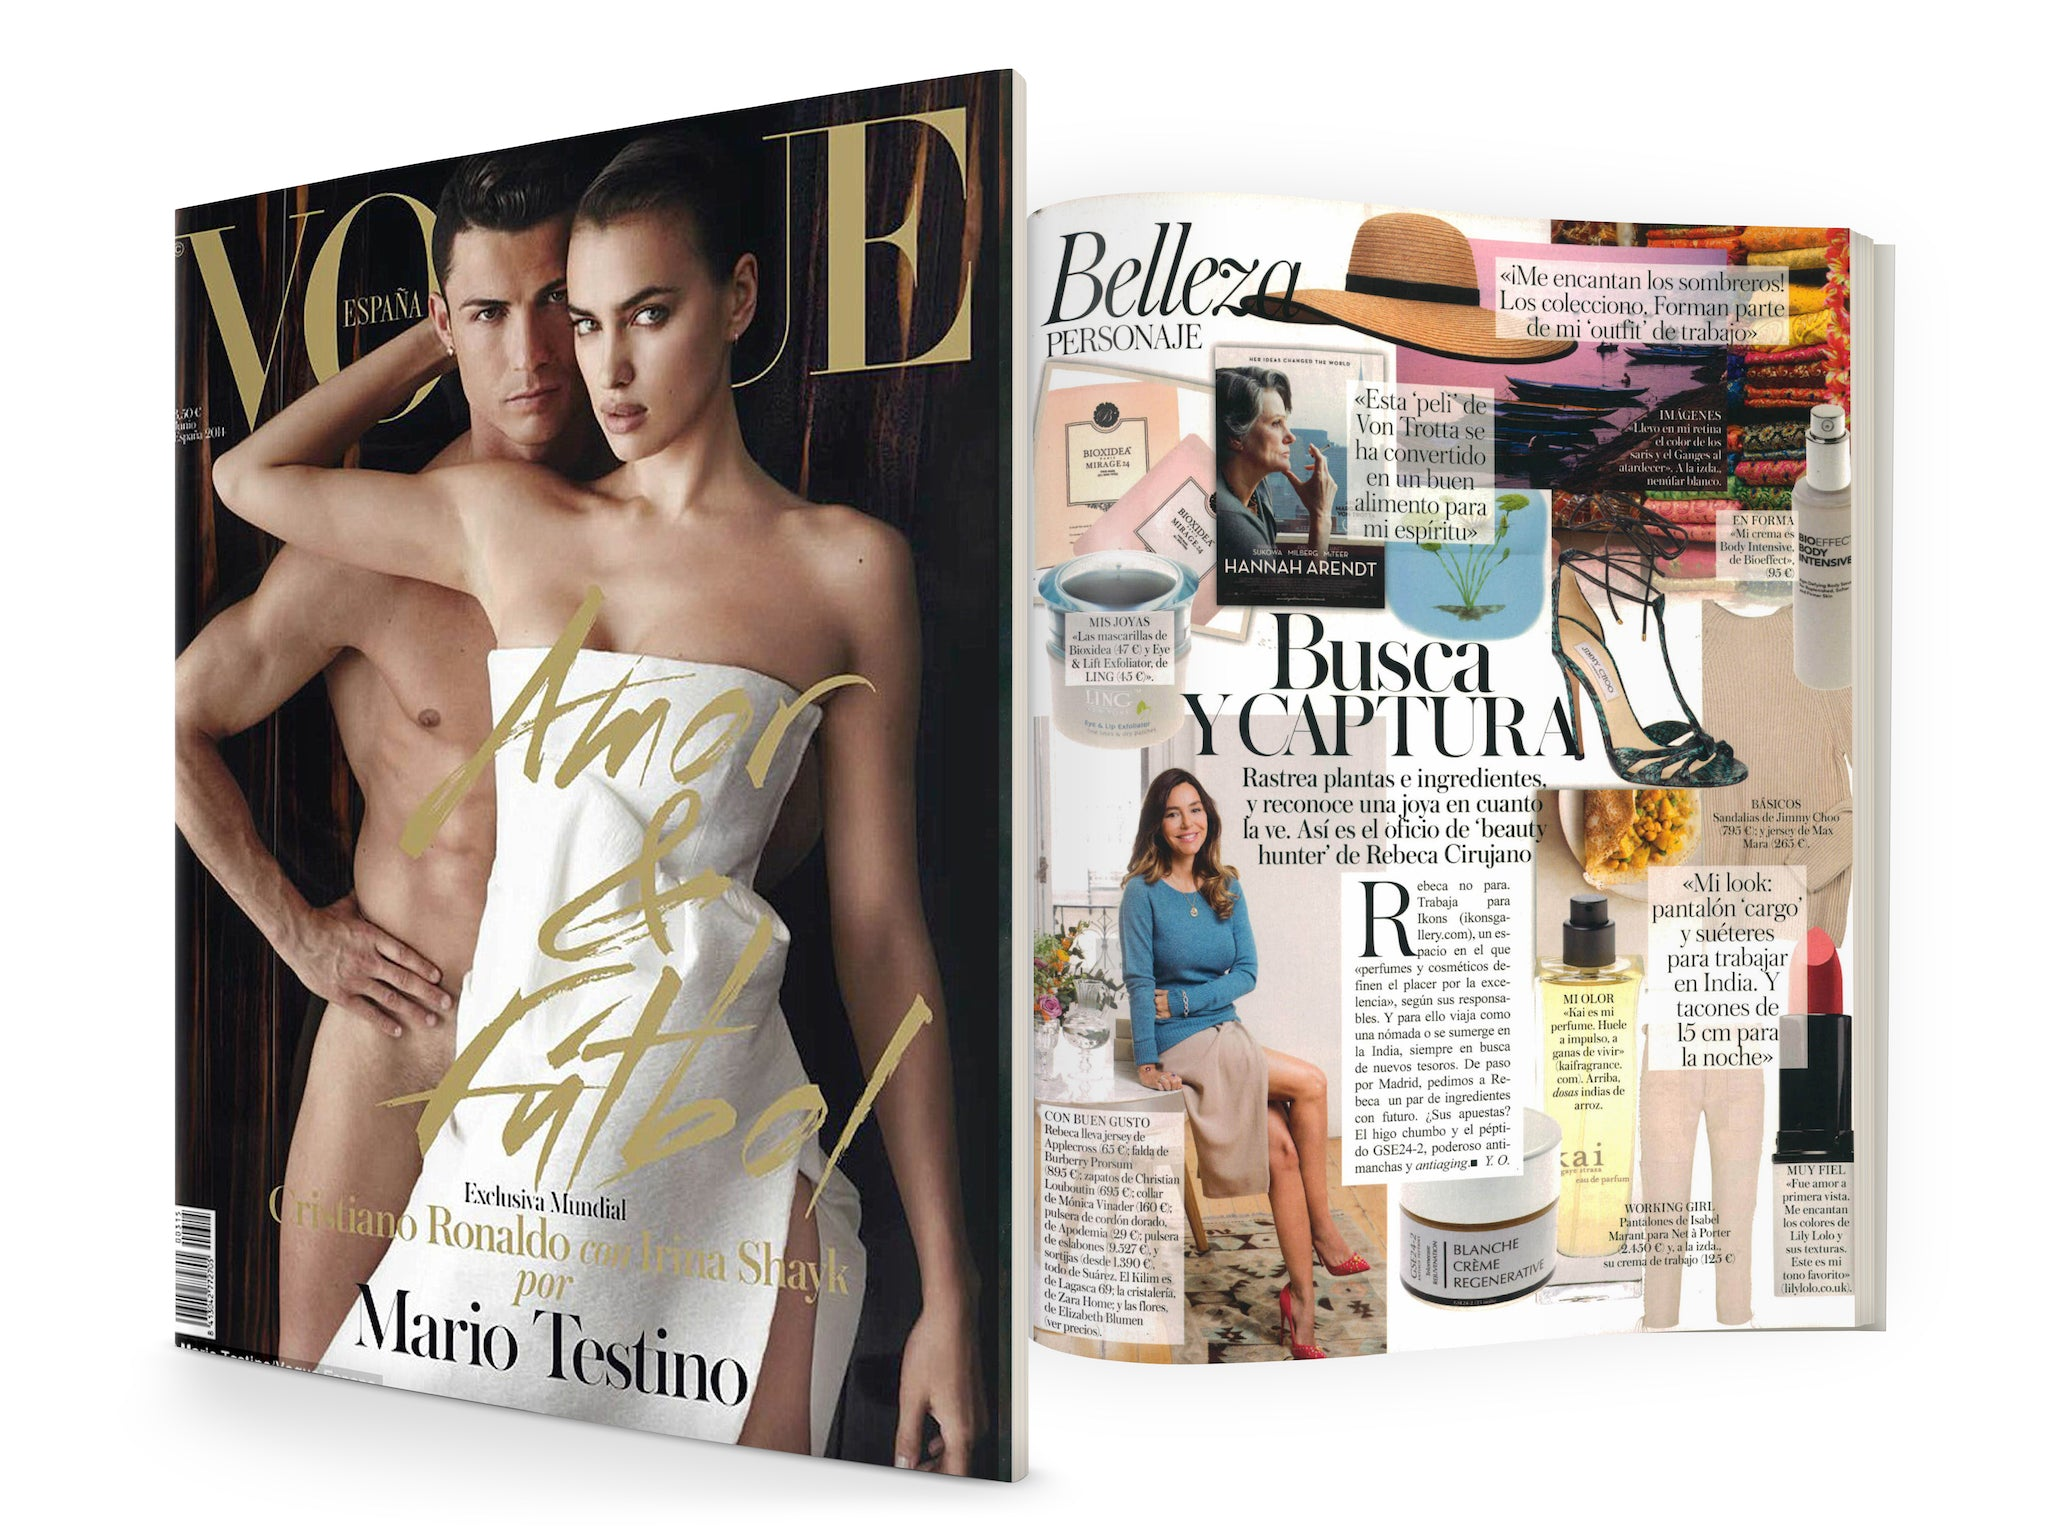 """Ikons Gallery Beauty Hunter, Rebecca Cirujano's favourite"" - BIOXIDEA Mirage24 collection featured in Vogue"